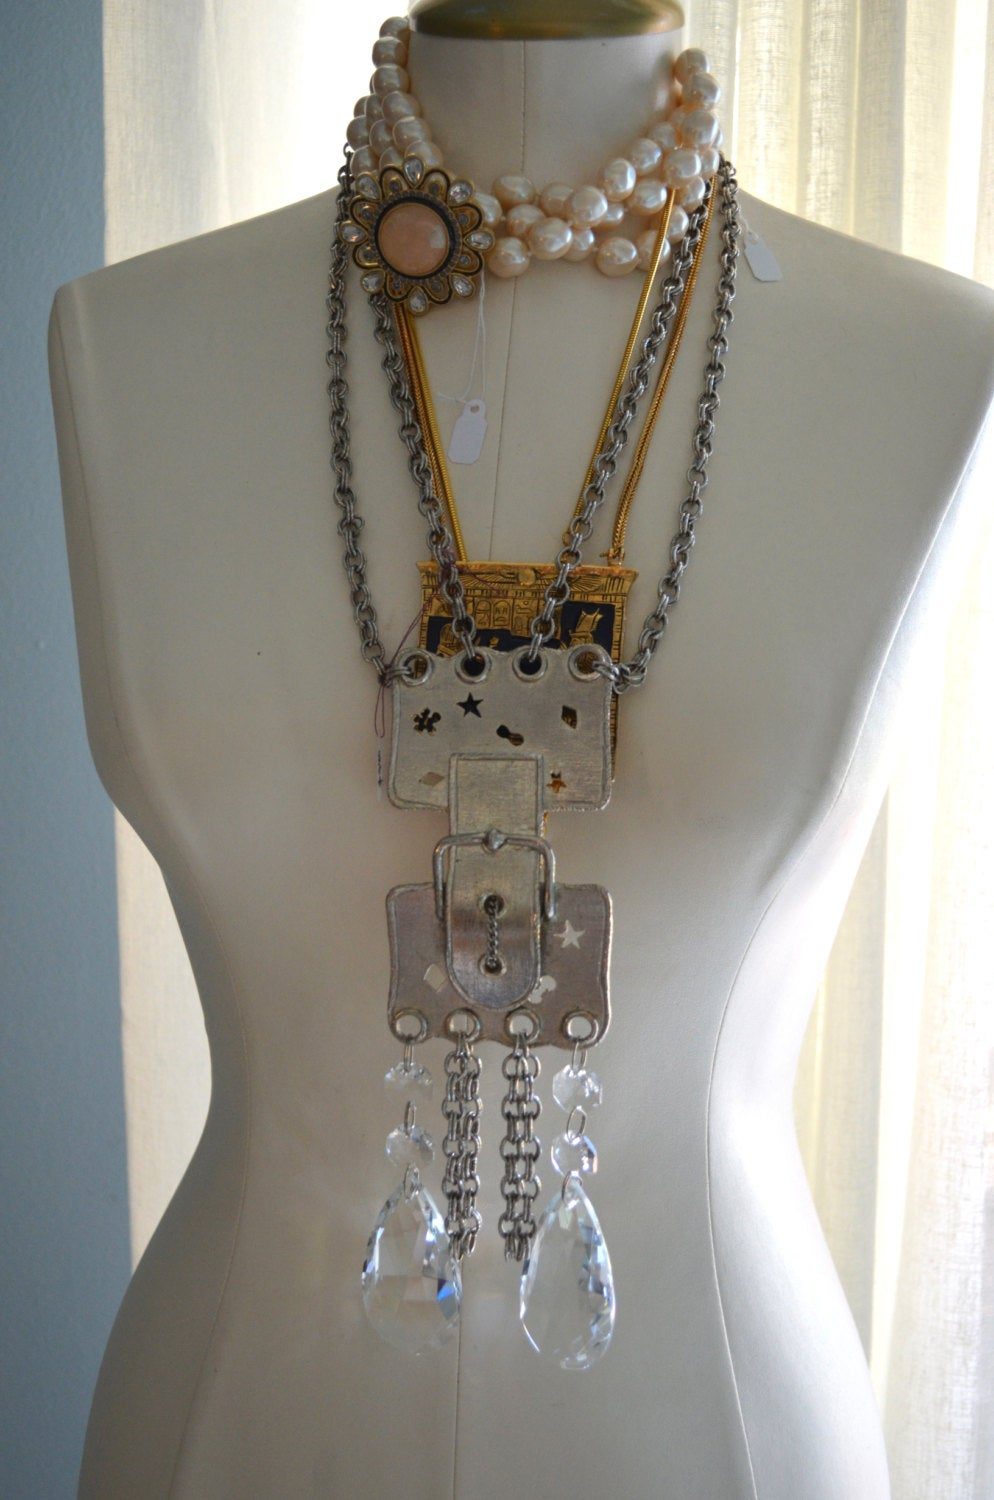 70's Silver Plated Brass Buckle Chain-Link Necklace With Tear Drop Swarovski Crystals